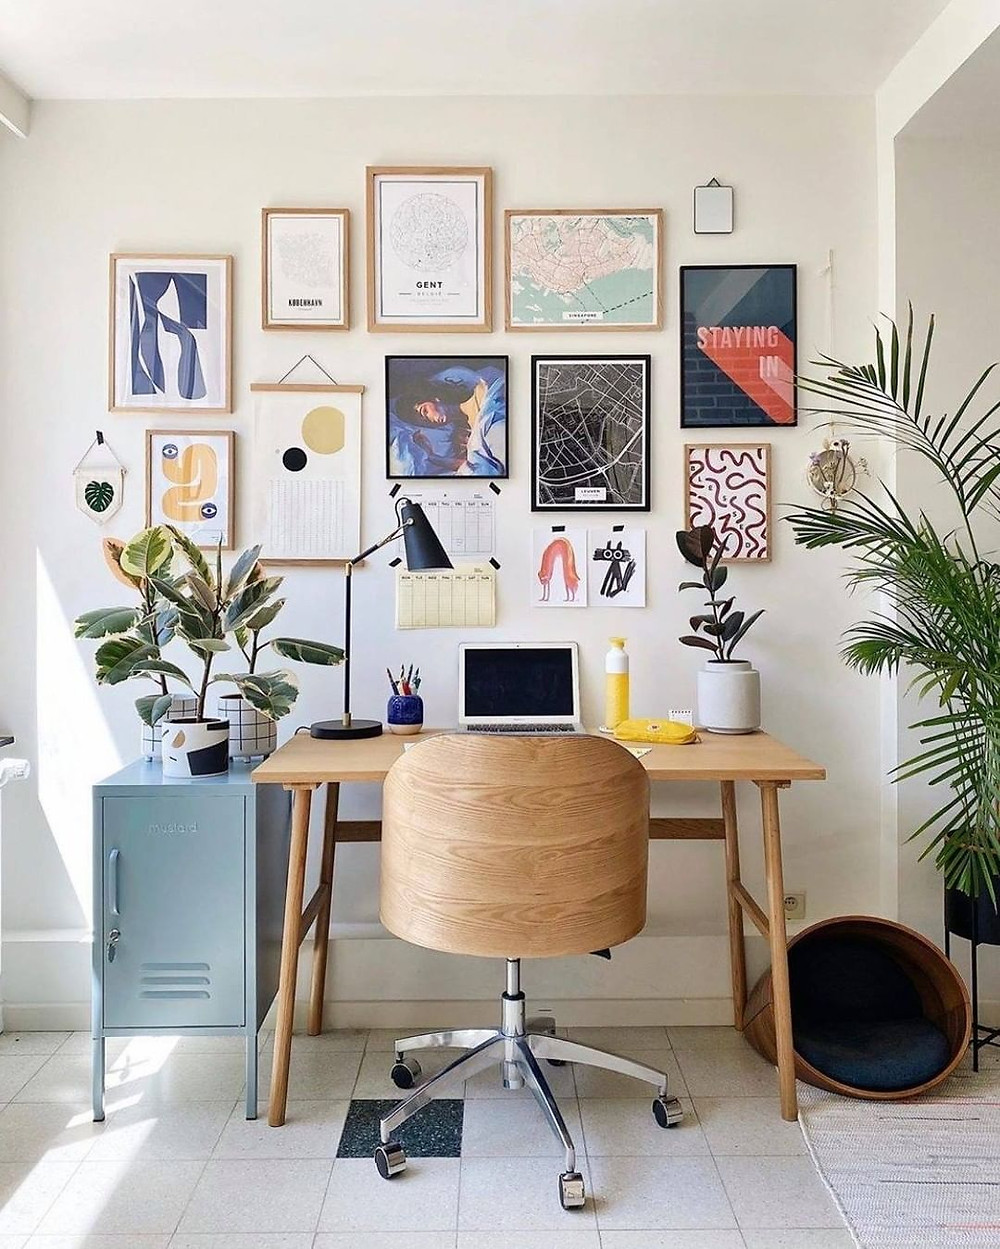 wooden desk and chair in a home office setup with tons of wall art and photography